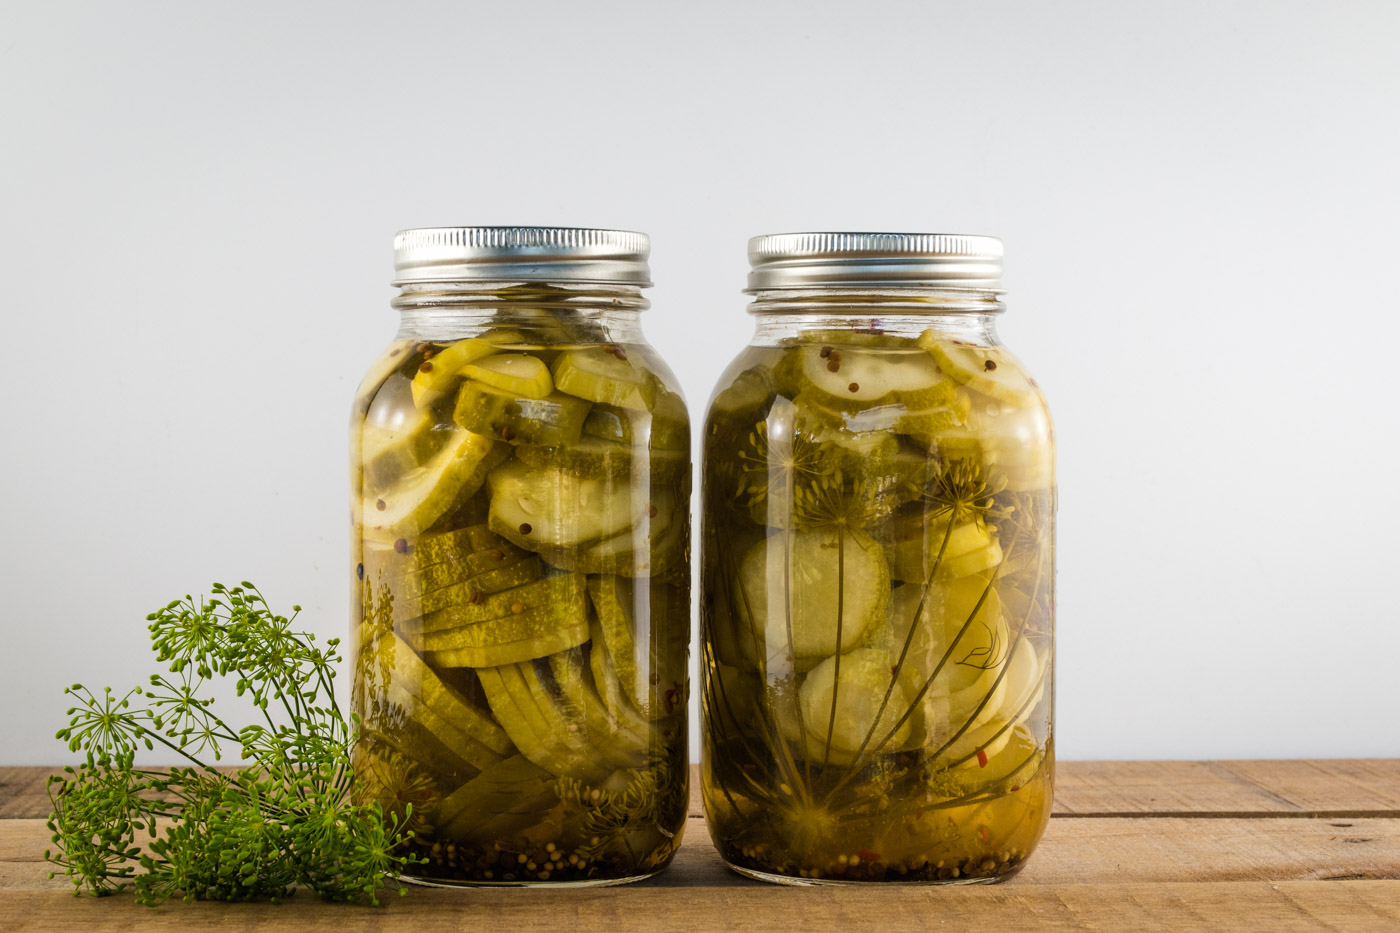 Sliced round dill pickles perfect for hamburgers